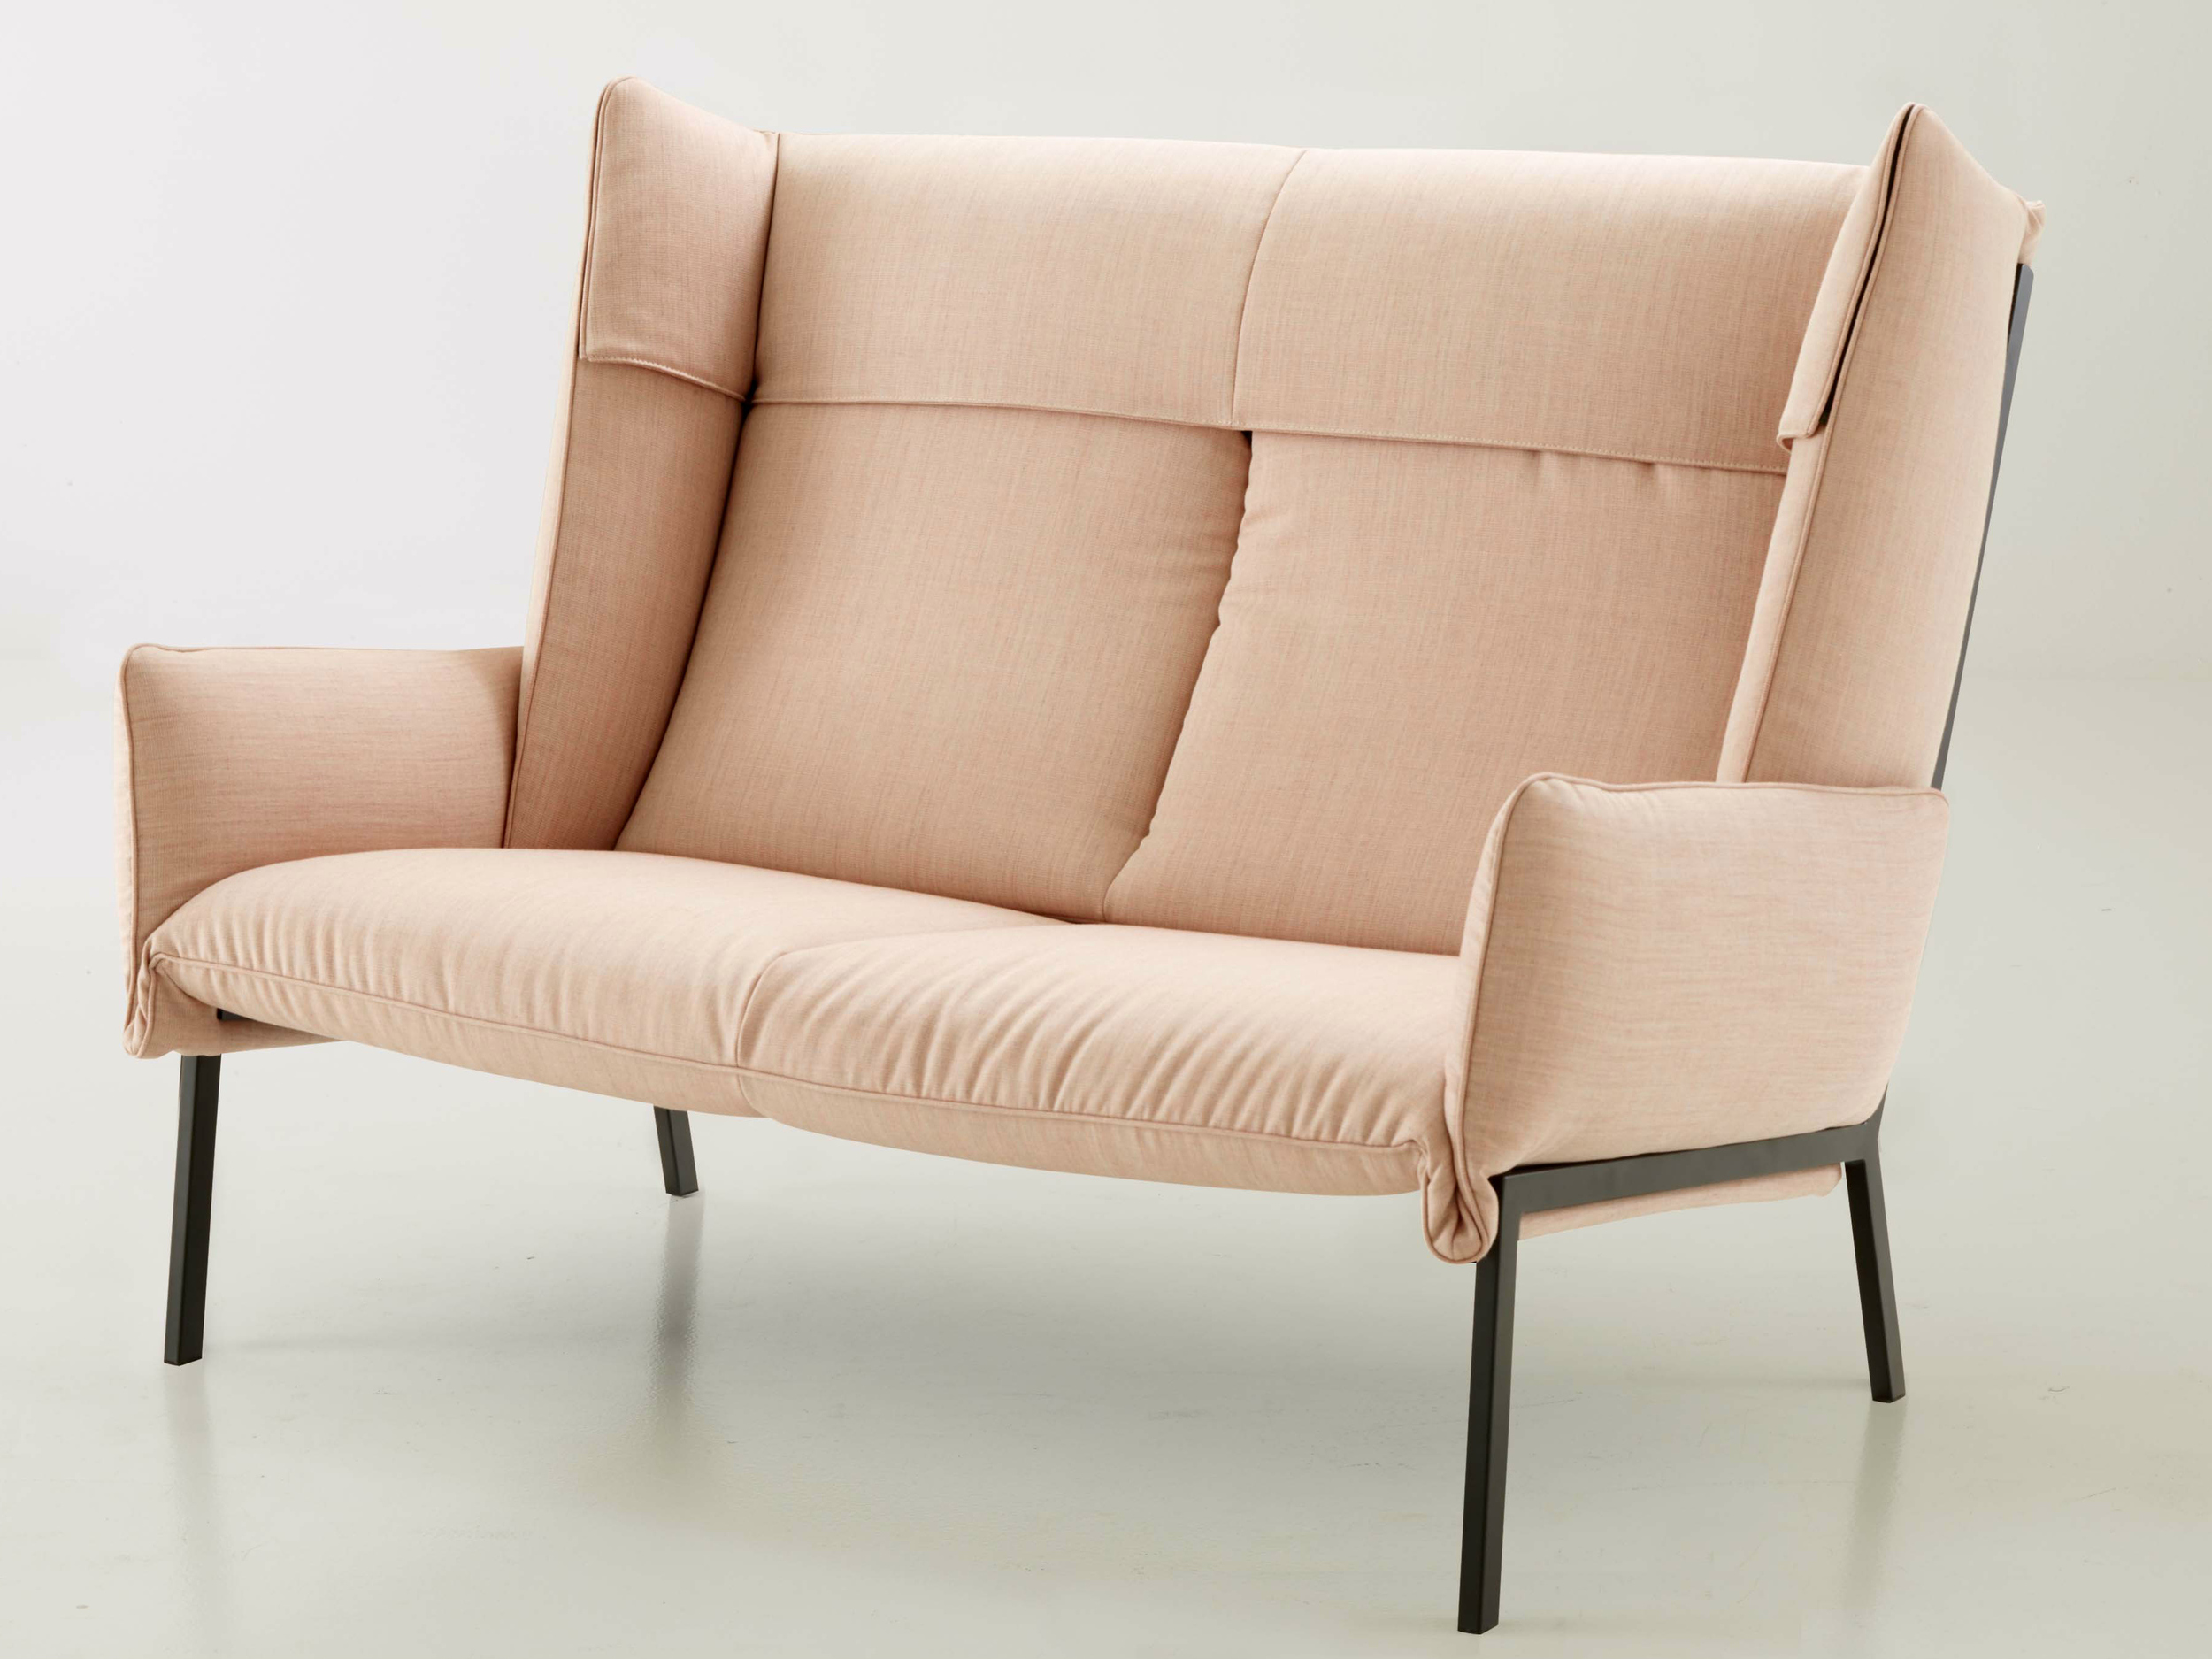 The new 'Beau Fixe' sofa by Inga Sempé for Ligne Roset premiered at Cologne. There is also an armchair.